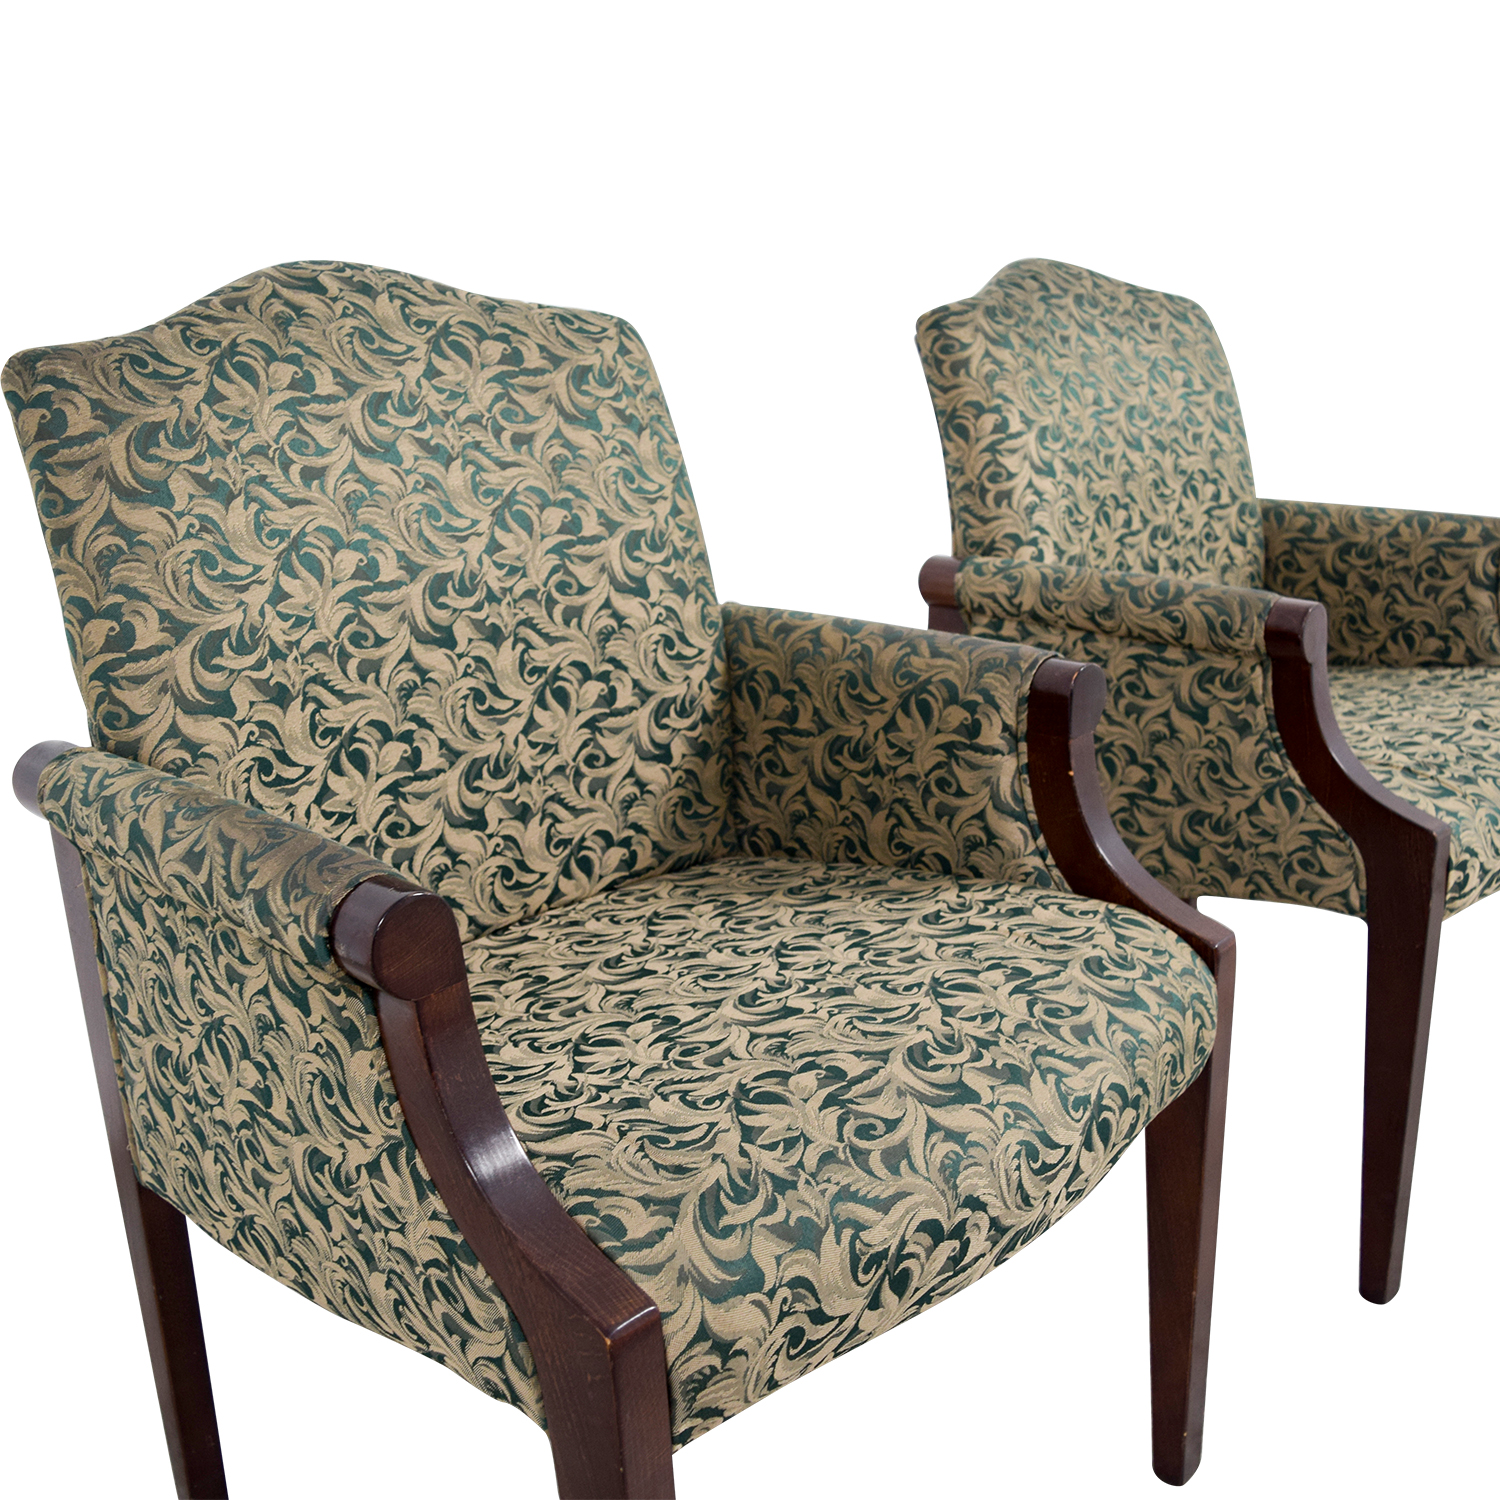 47% OFF Paoli Paoli Green Leaf Upholstered Accent Chairs Chairs